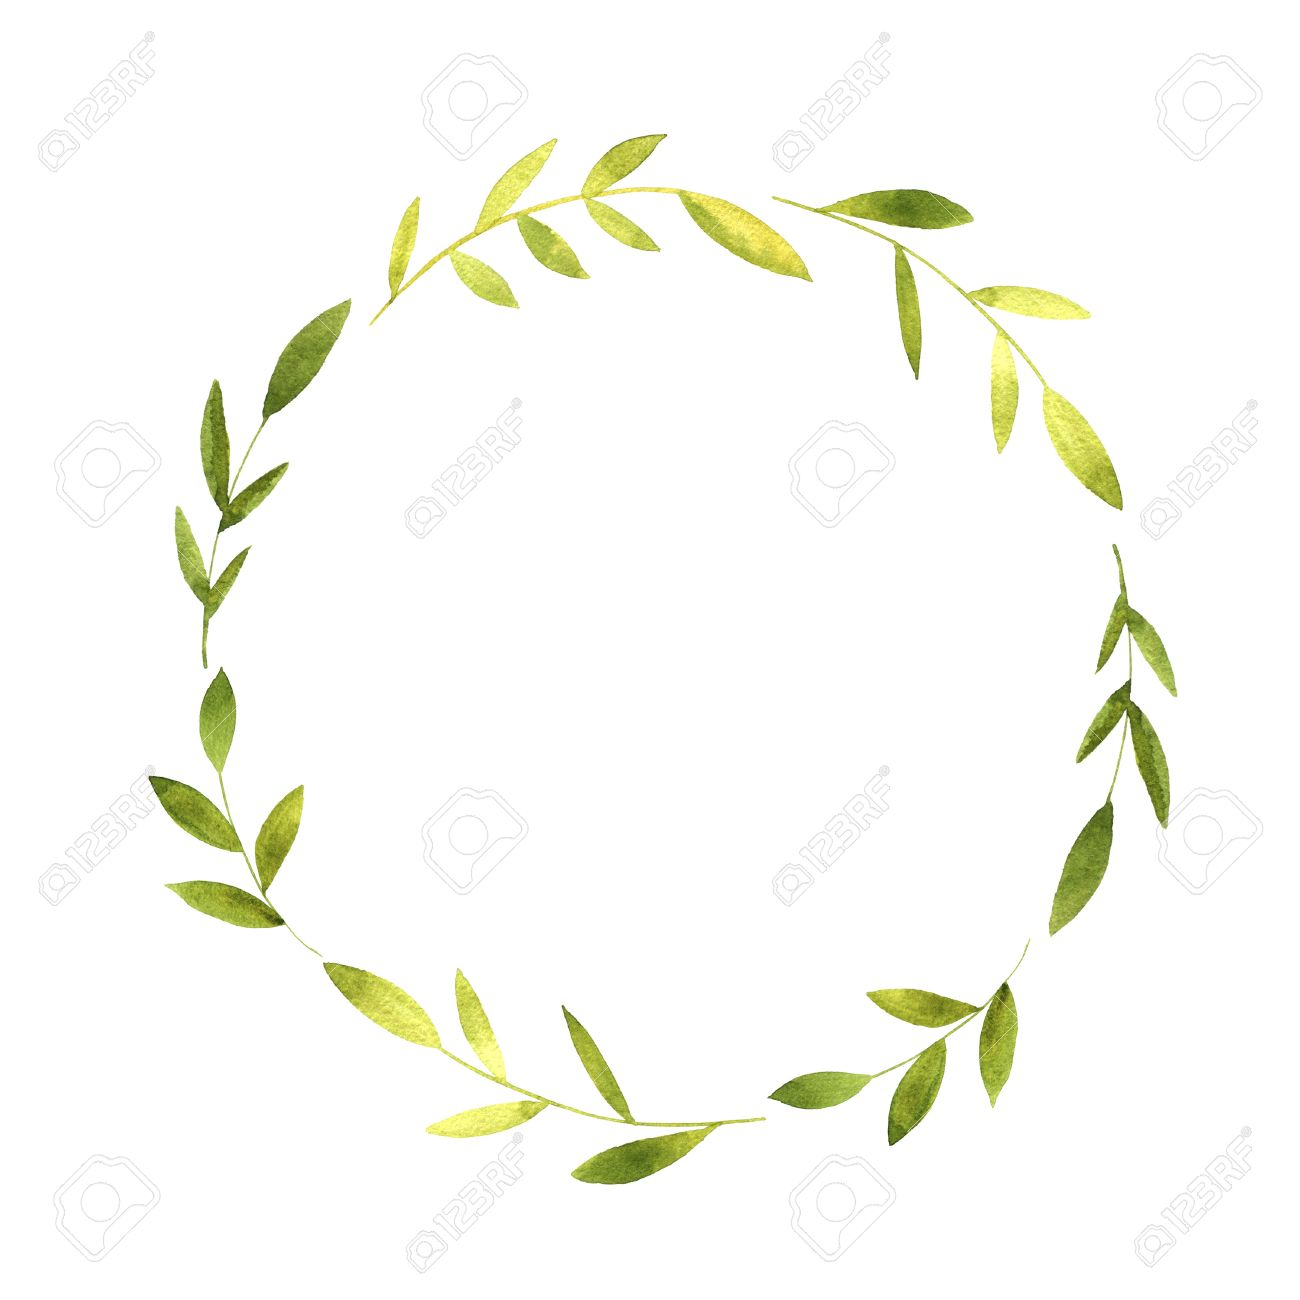 round wreath with watercolor green branches and leaves floral